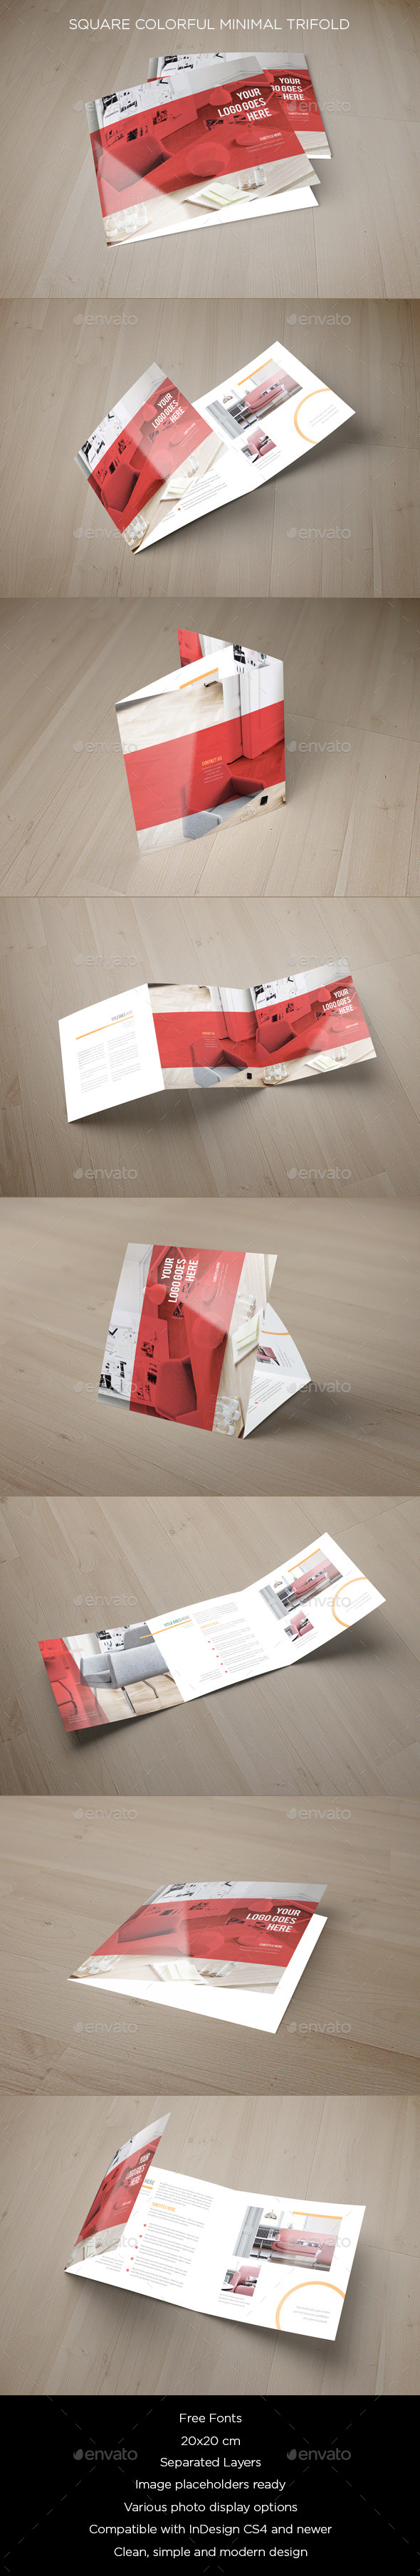 Square Colorful Minimal Trifold - Brochures Print Templates